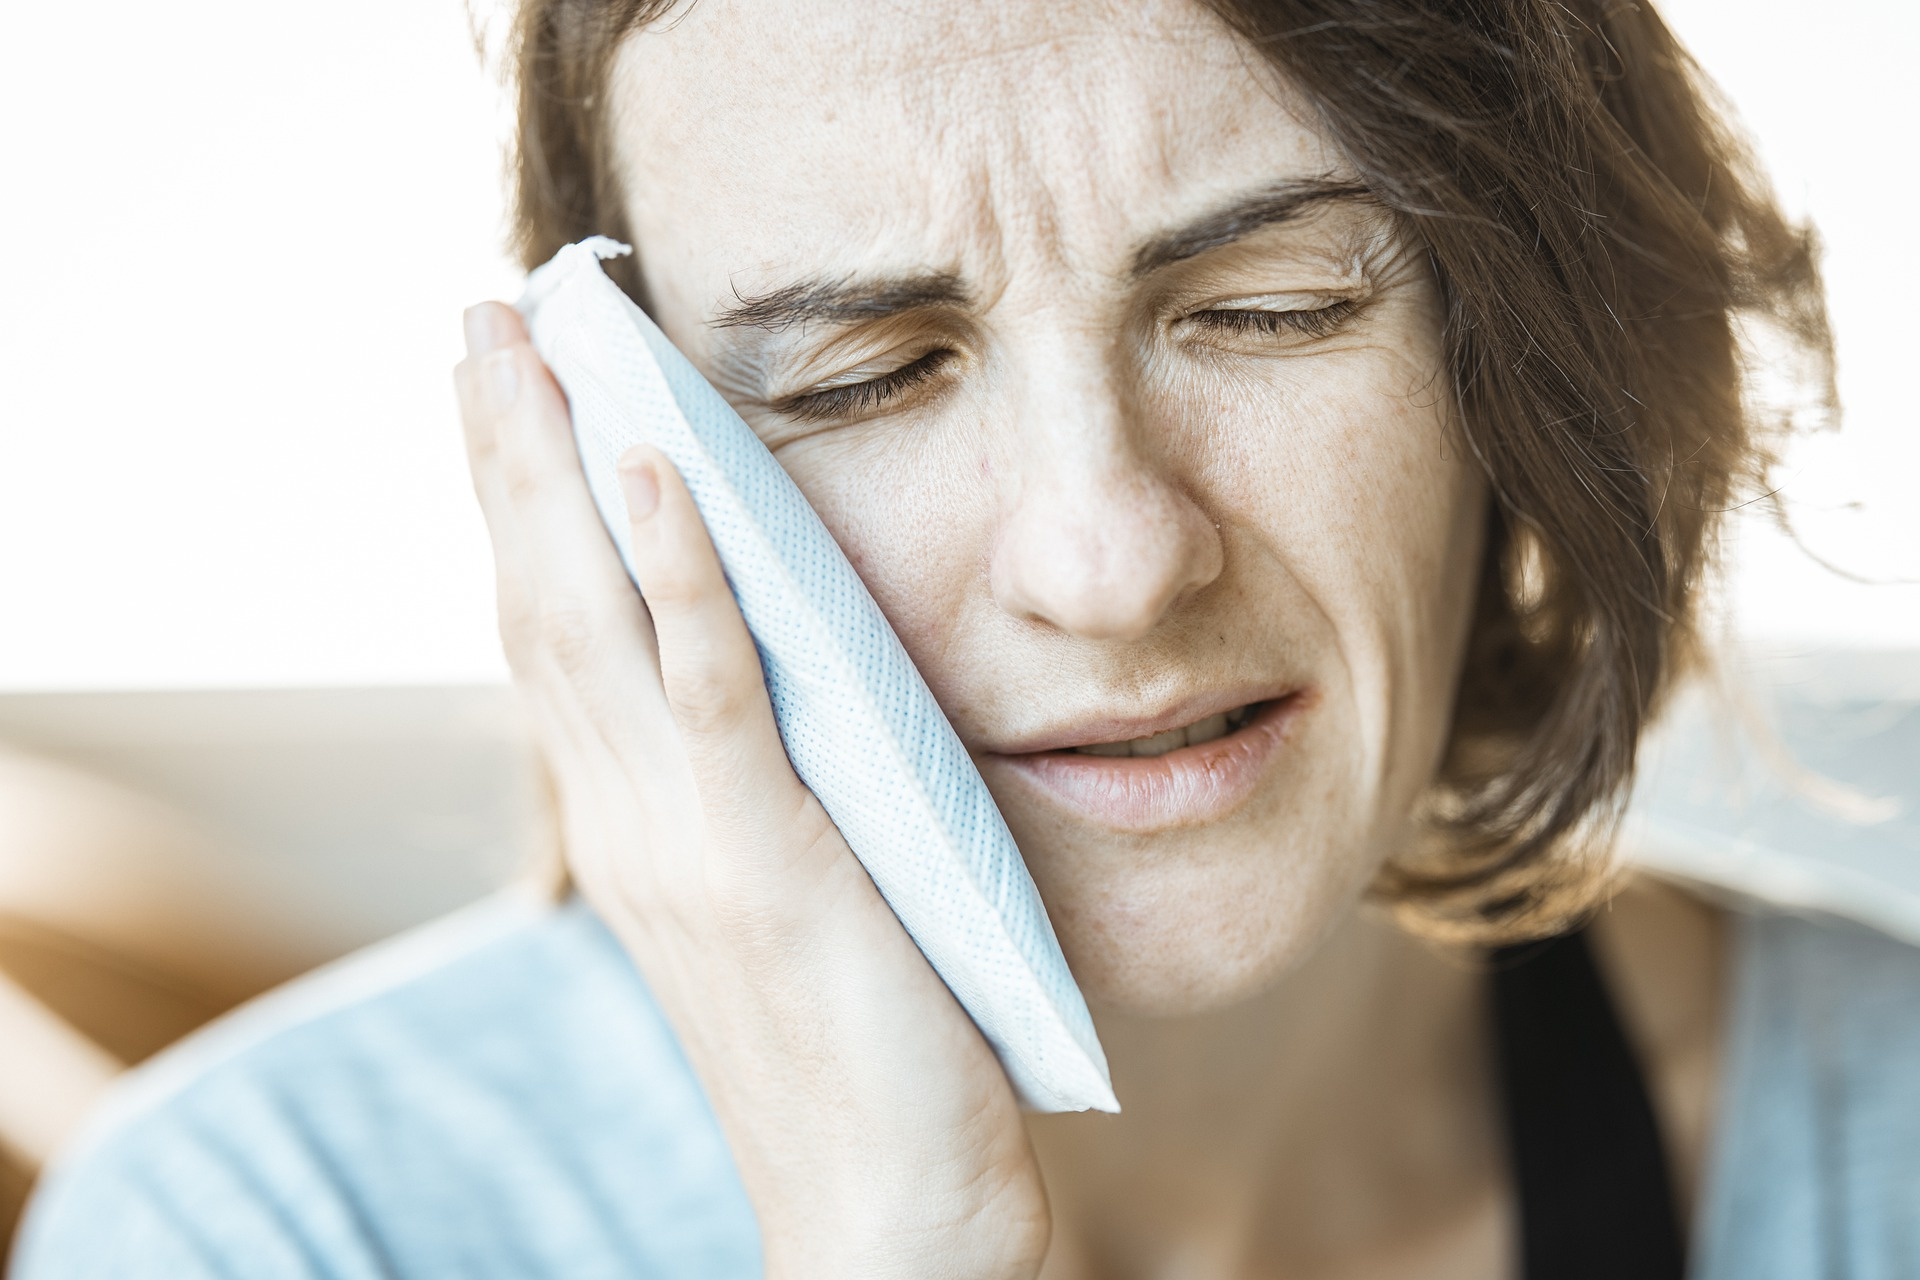 Woman holding an ice pack to her cheek